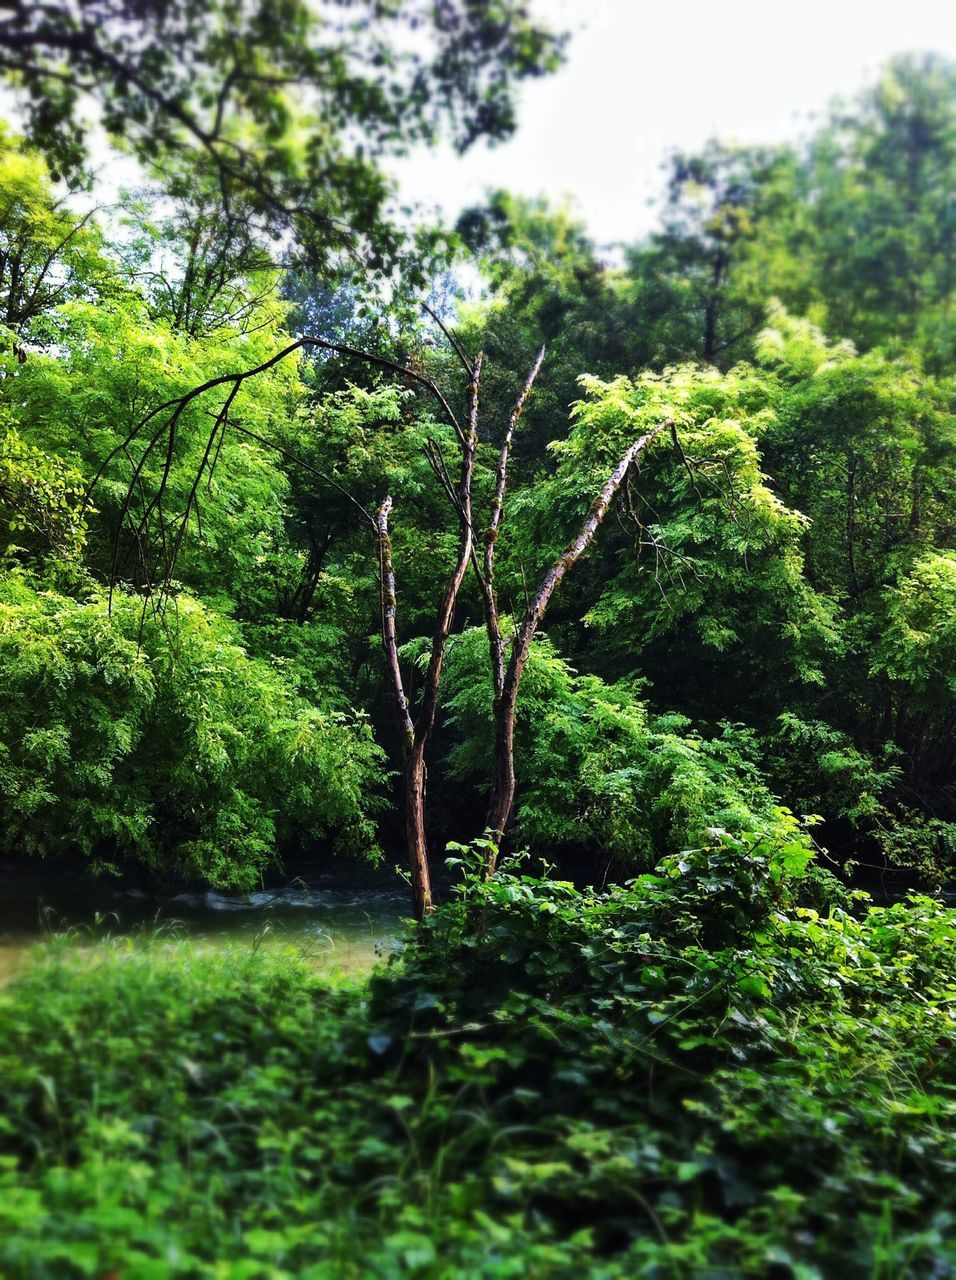 growth, nature, green, tree, plant, green color, beauty in nature, tranquility, outdoors, day, no people, foliage